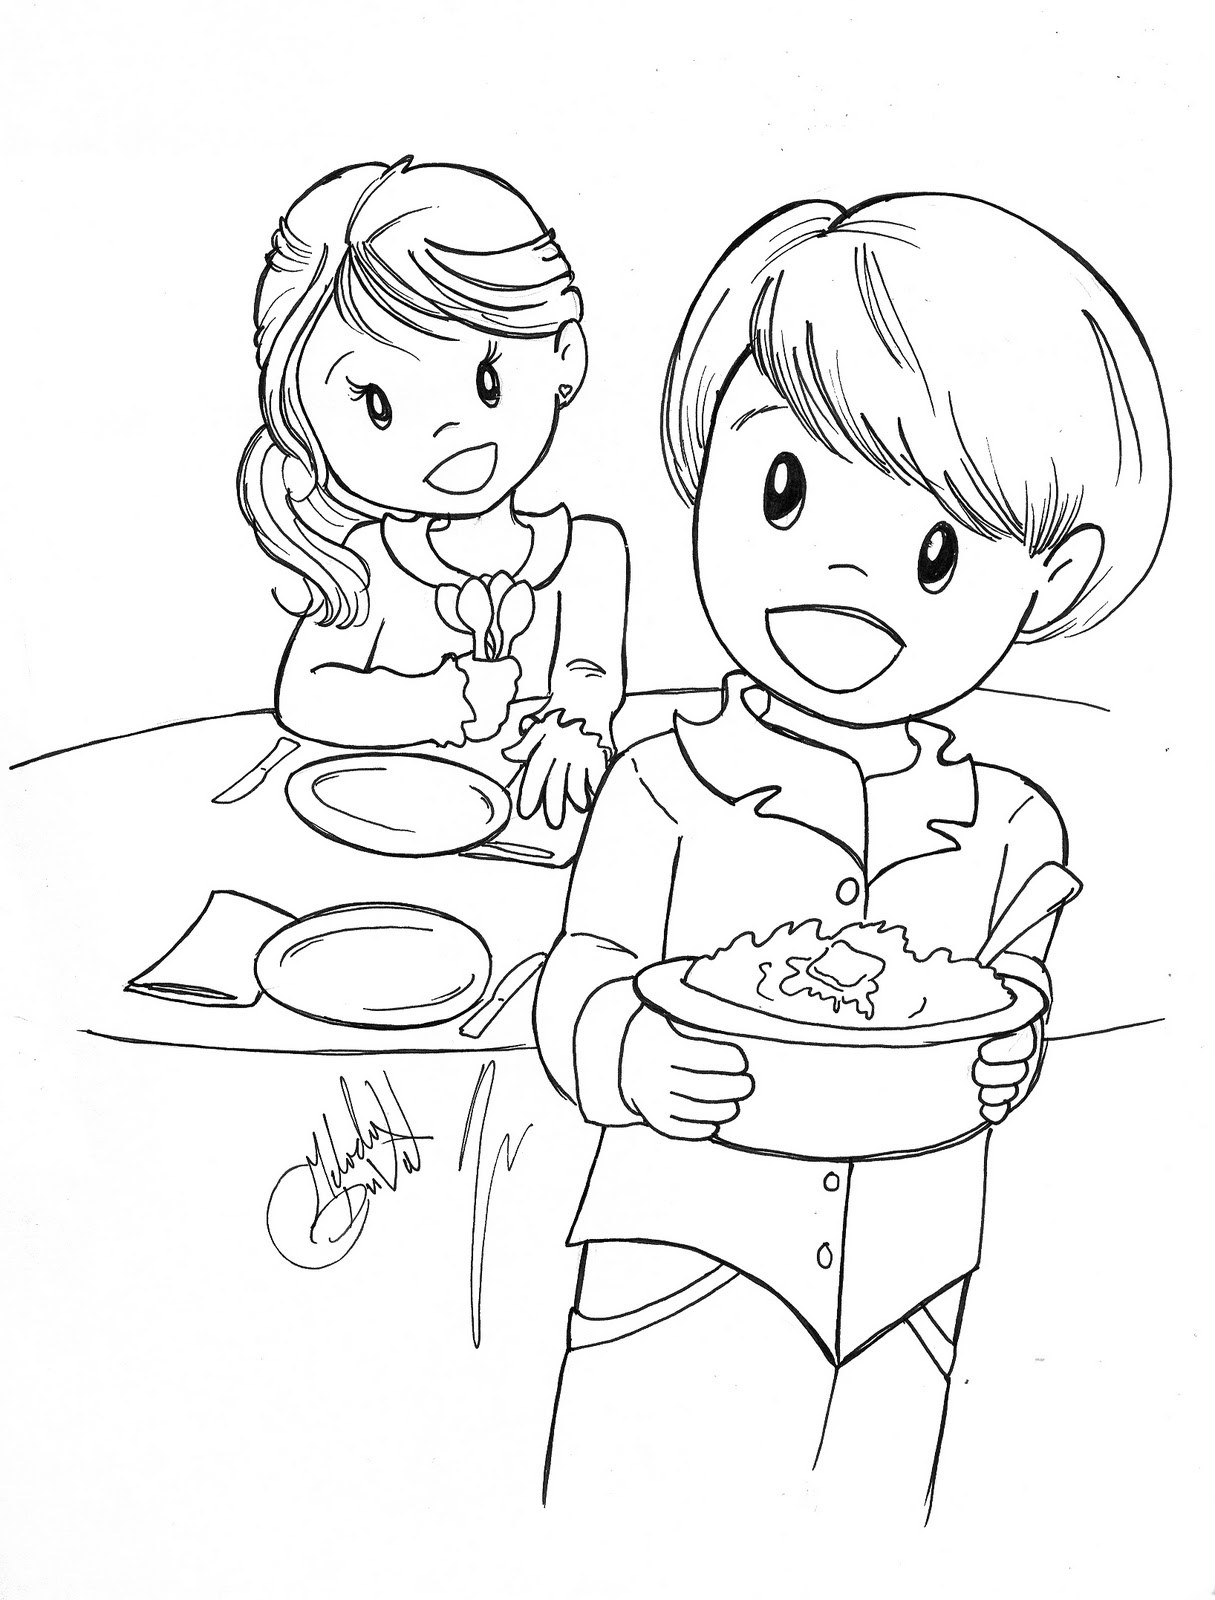 Table Setting Coloring Page At Getdrawings